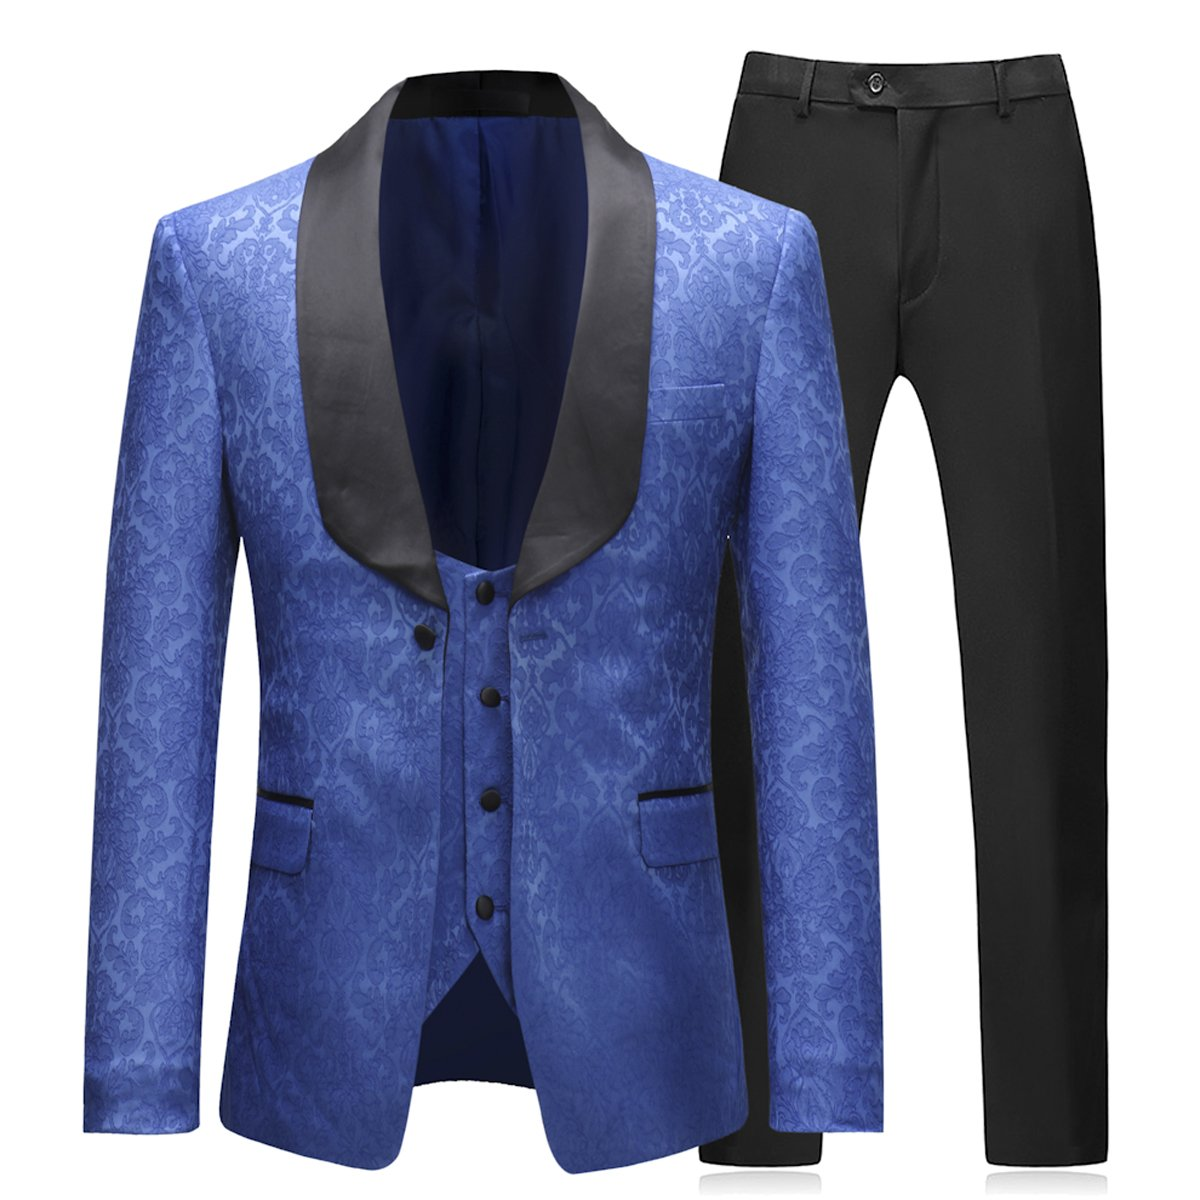 Boyland Mens 3 Piece Tuxedos Elegant Jacquard Royal Blue Suit Slim Fit(Tux Jacket+Vest+Pants) by Boyland